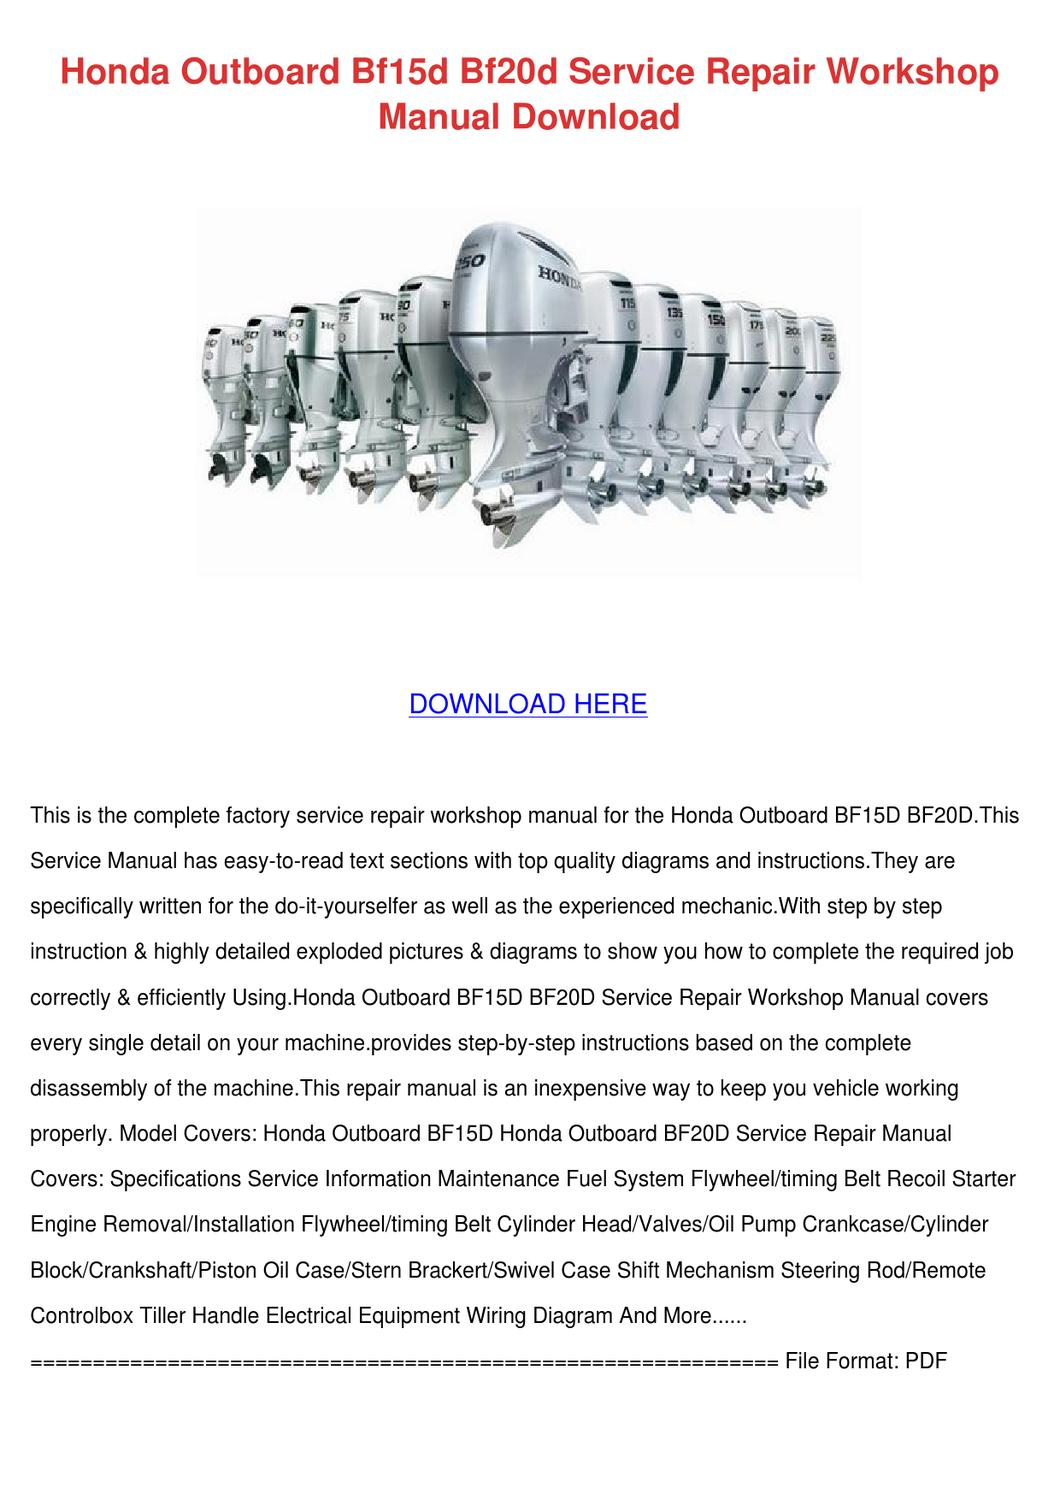 honda outboard bf15d bf20d service repair wor by alvawatson issuu rh issuu com Service ManualsOnline Owner's Manual